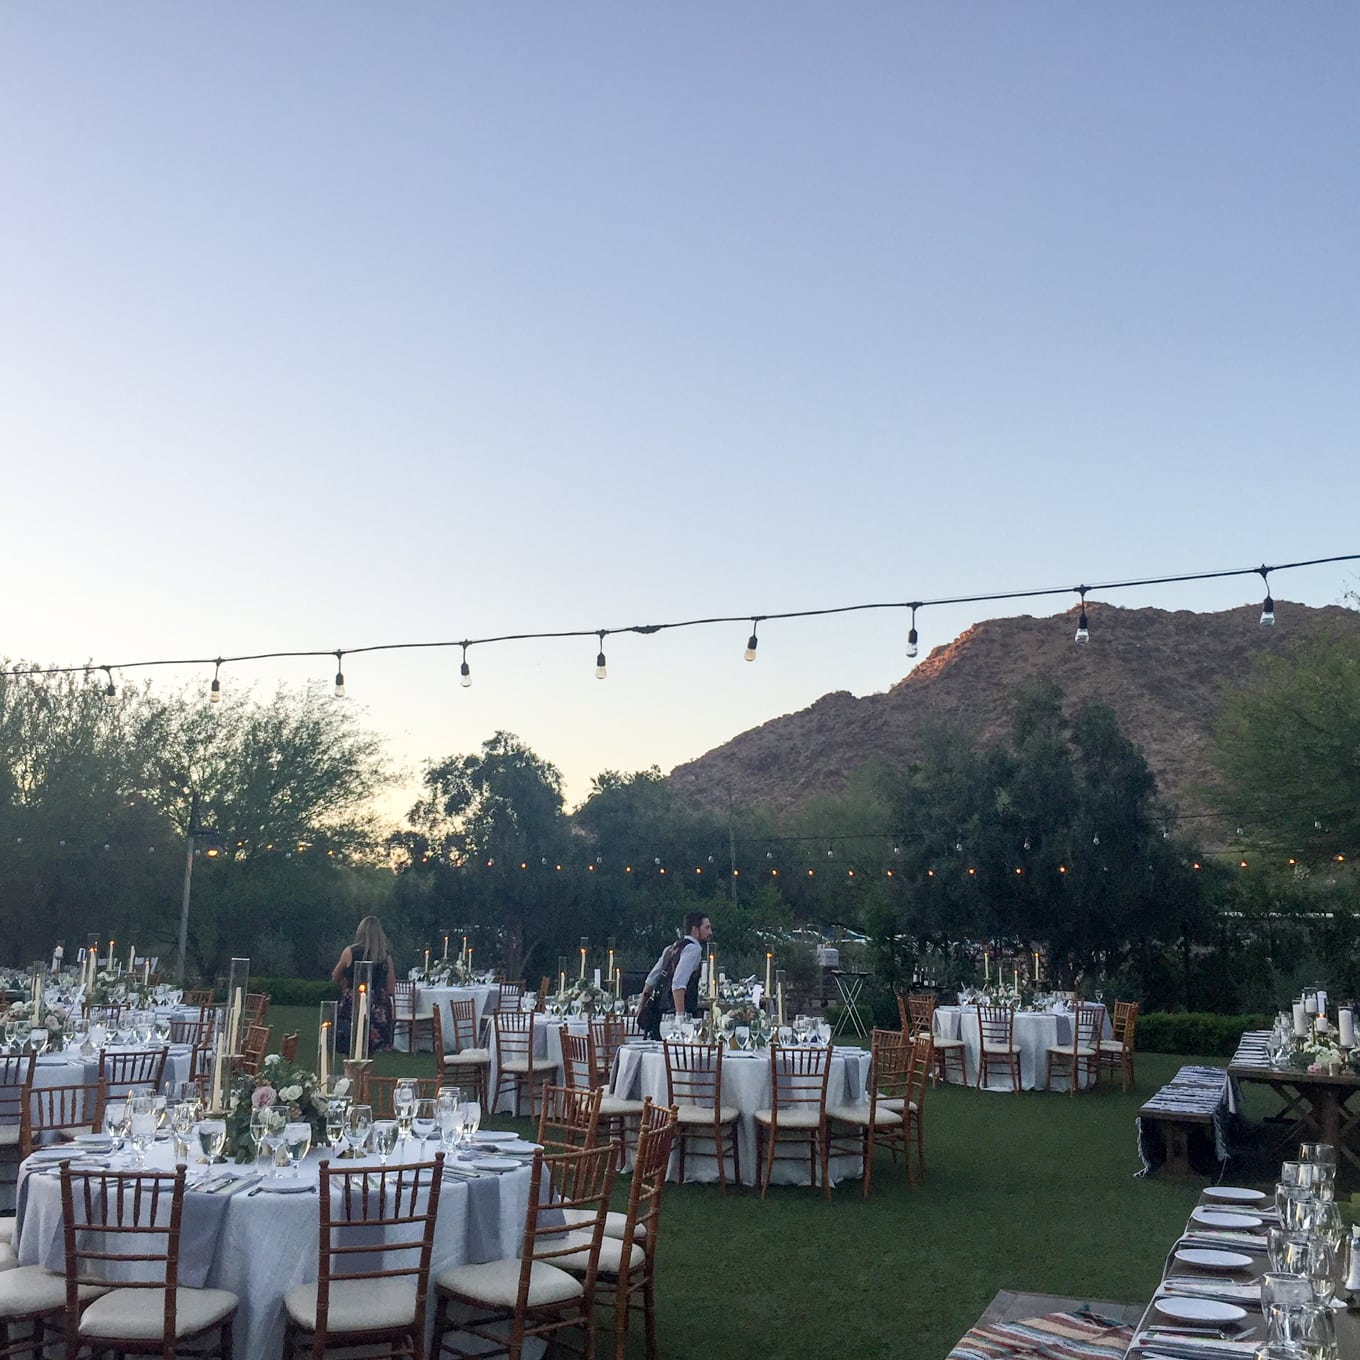 El Chorro - Scottsdale Arizona Wedding Venue | Lake Shore Lady